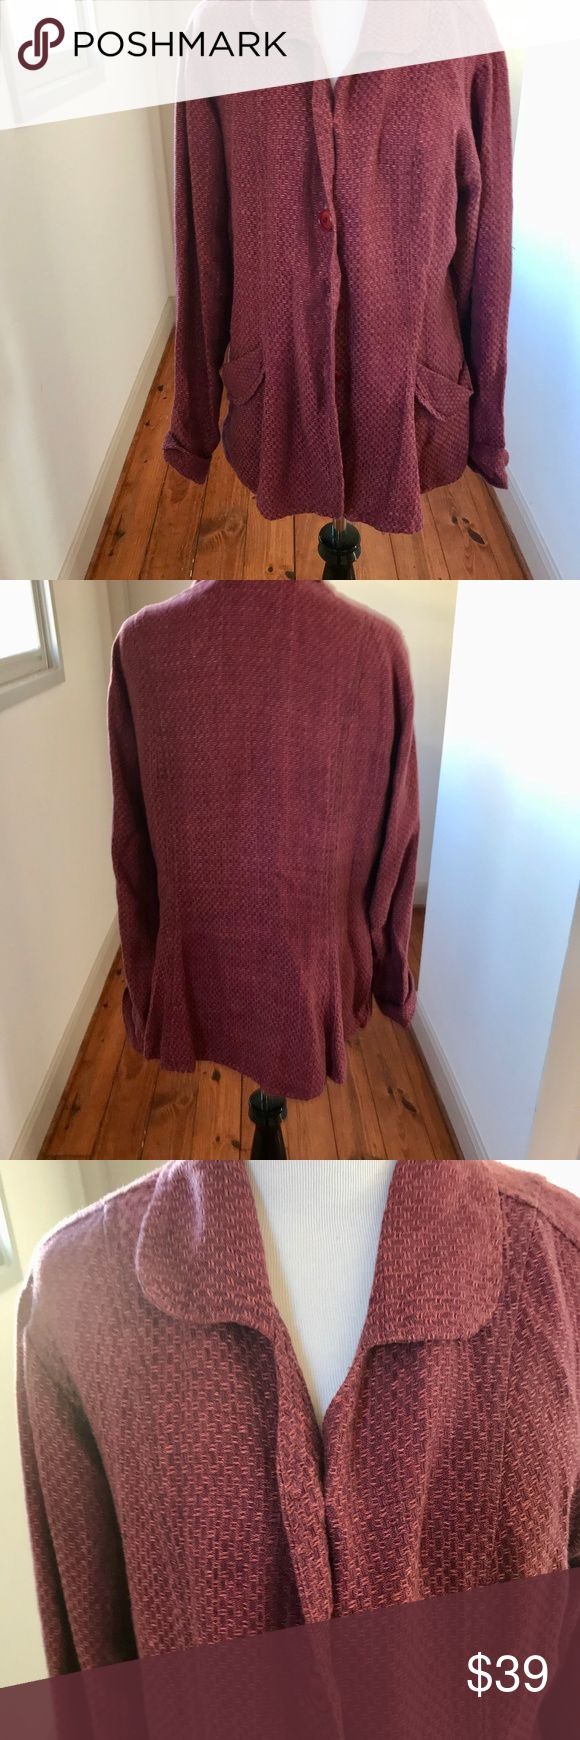 """Flax Linen Jacket Burgundy Sz Small Flax Linen Jacket . Light burgundy/wine. Size: small. Measurements: Length (shoulder to bottom edge):  26.5"""" Width (from under one arm to the other): 18.5"""". Sleeve: 21"""".  Design: solid, basket weave stitching. 5 button closure, 2 front pockets, collar. Fabric: 100% linen. Smoke Free Home. We Do Have Cats.  Pair this with a flowing skirt or a pair of jeans Flax Jackets & Coats Blazers"""